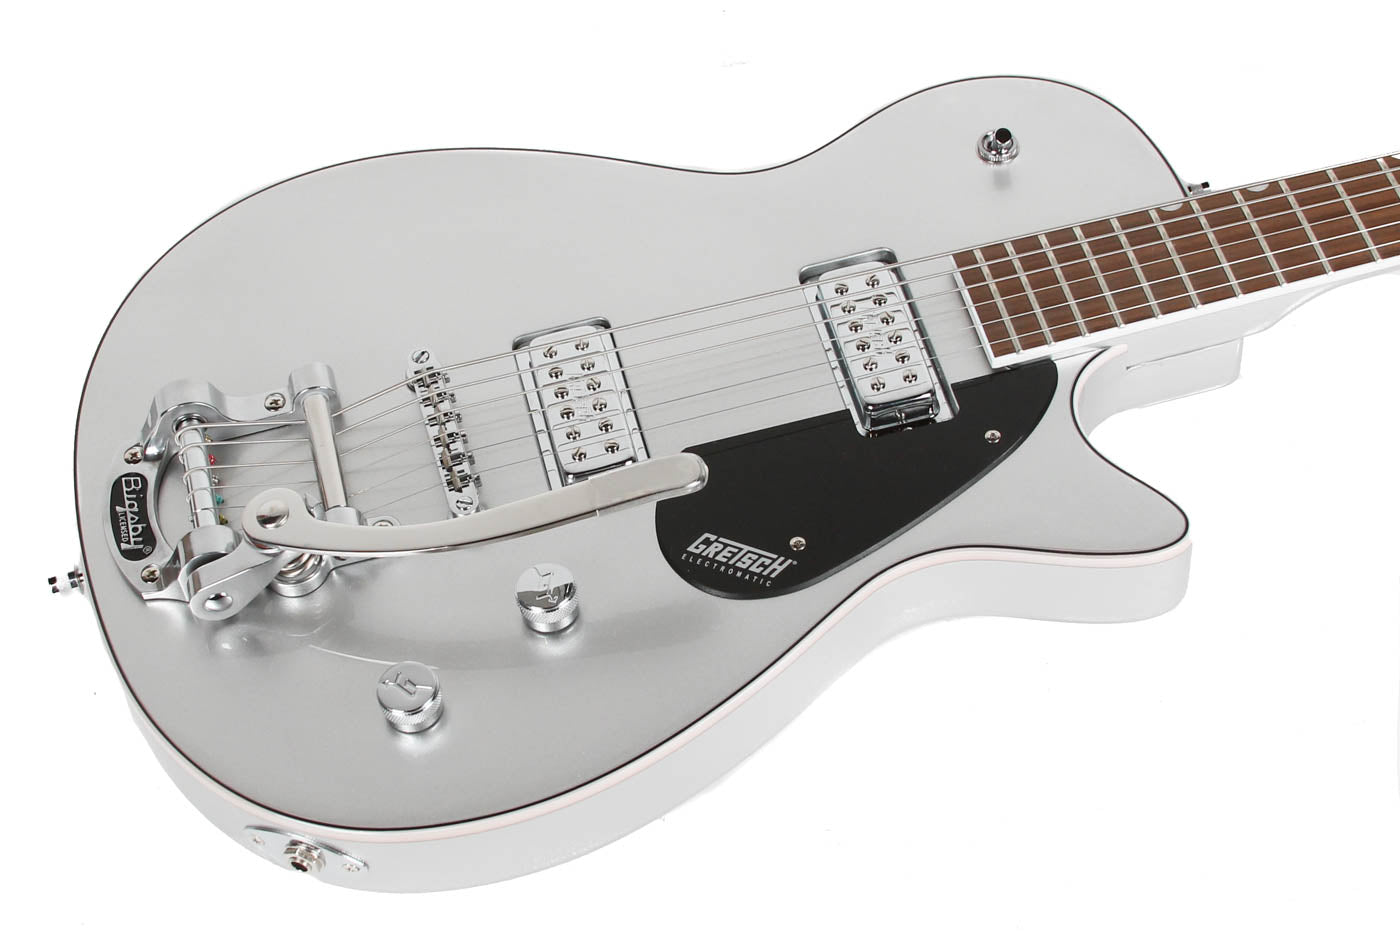 2021 Gretsch G5260T Electromatic Jet Baritone Airline Silver image 6